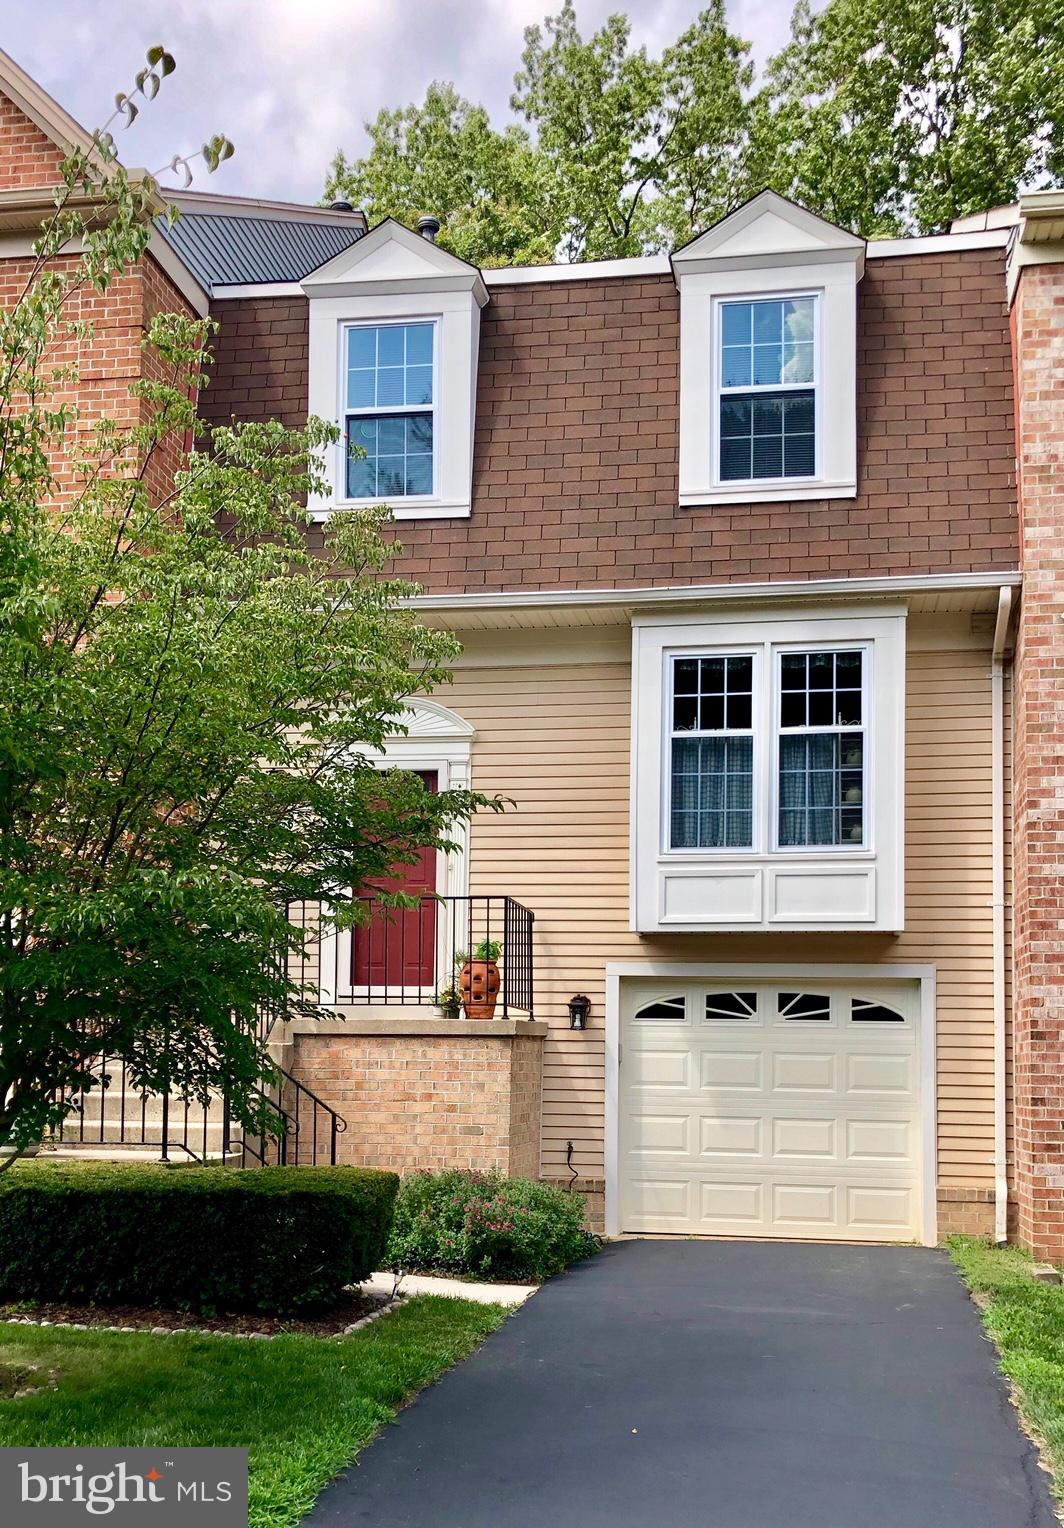 Hidden Gem nestled in nature and in a demand Location. HOA covers  Community Pool, Lawn Care, Trash & Recycling Service.  This fully remodeled home backs to serenity, privacy and trees.  Upper and Lower Decks with Privacy Fence.  Just off Rolling Road and Fairfax County Parkway for easy commute to DC.  Don't miss this house!